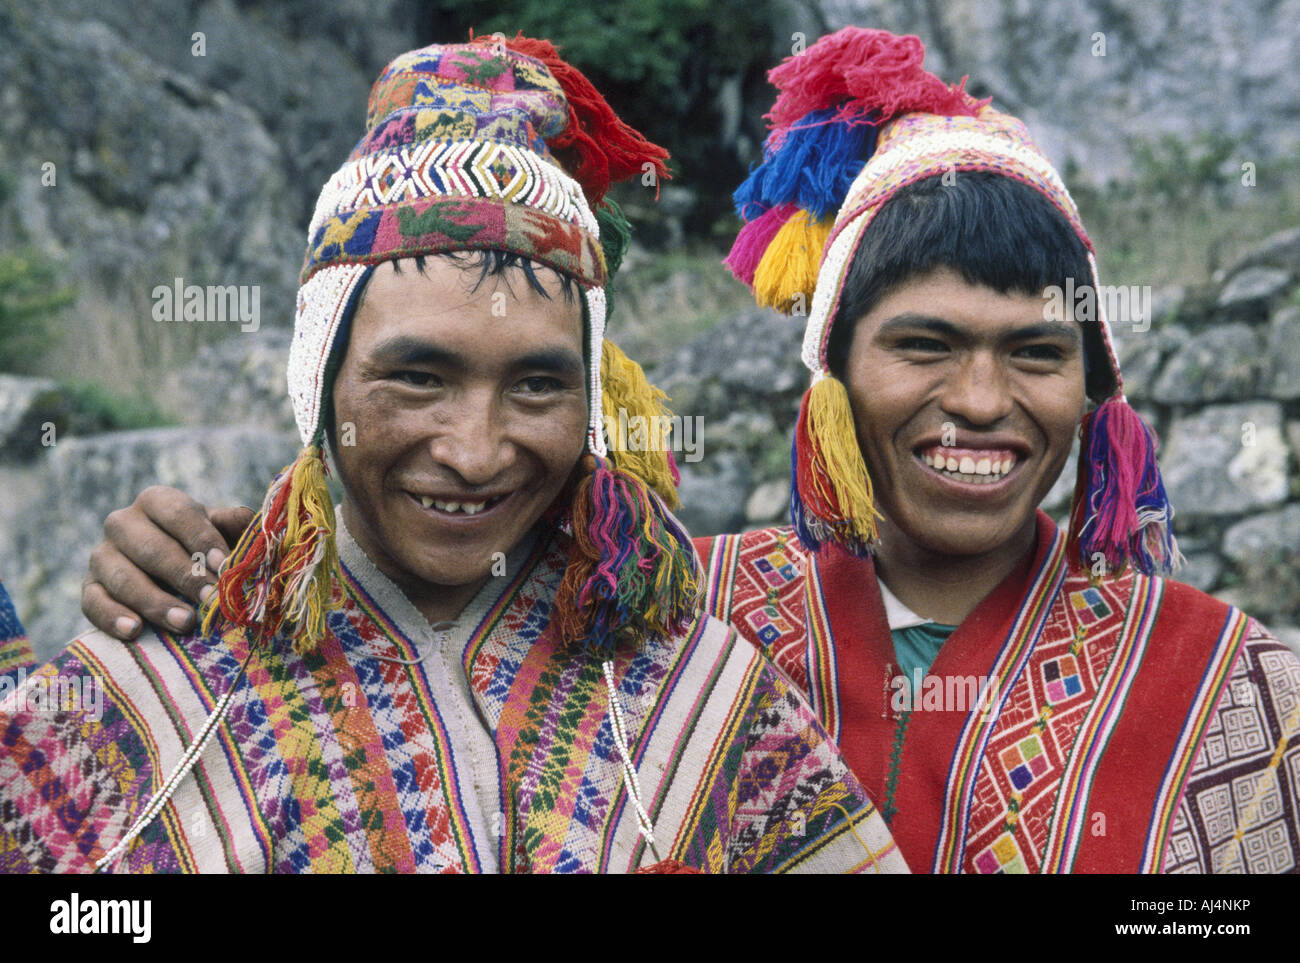 PERU  Porters on the Inca Trail in national dress - Stock Image